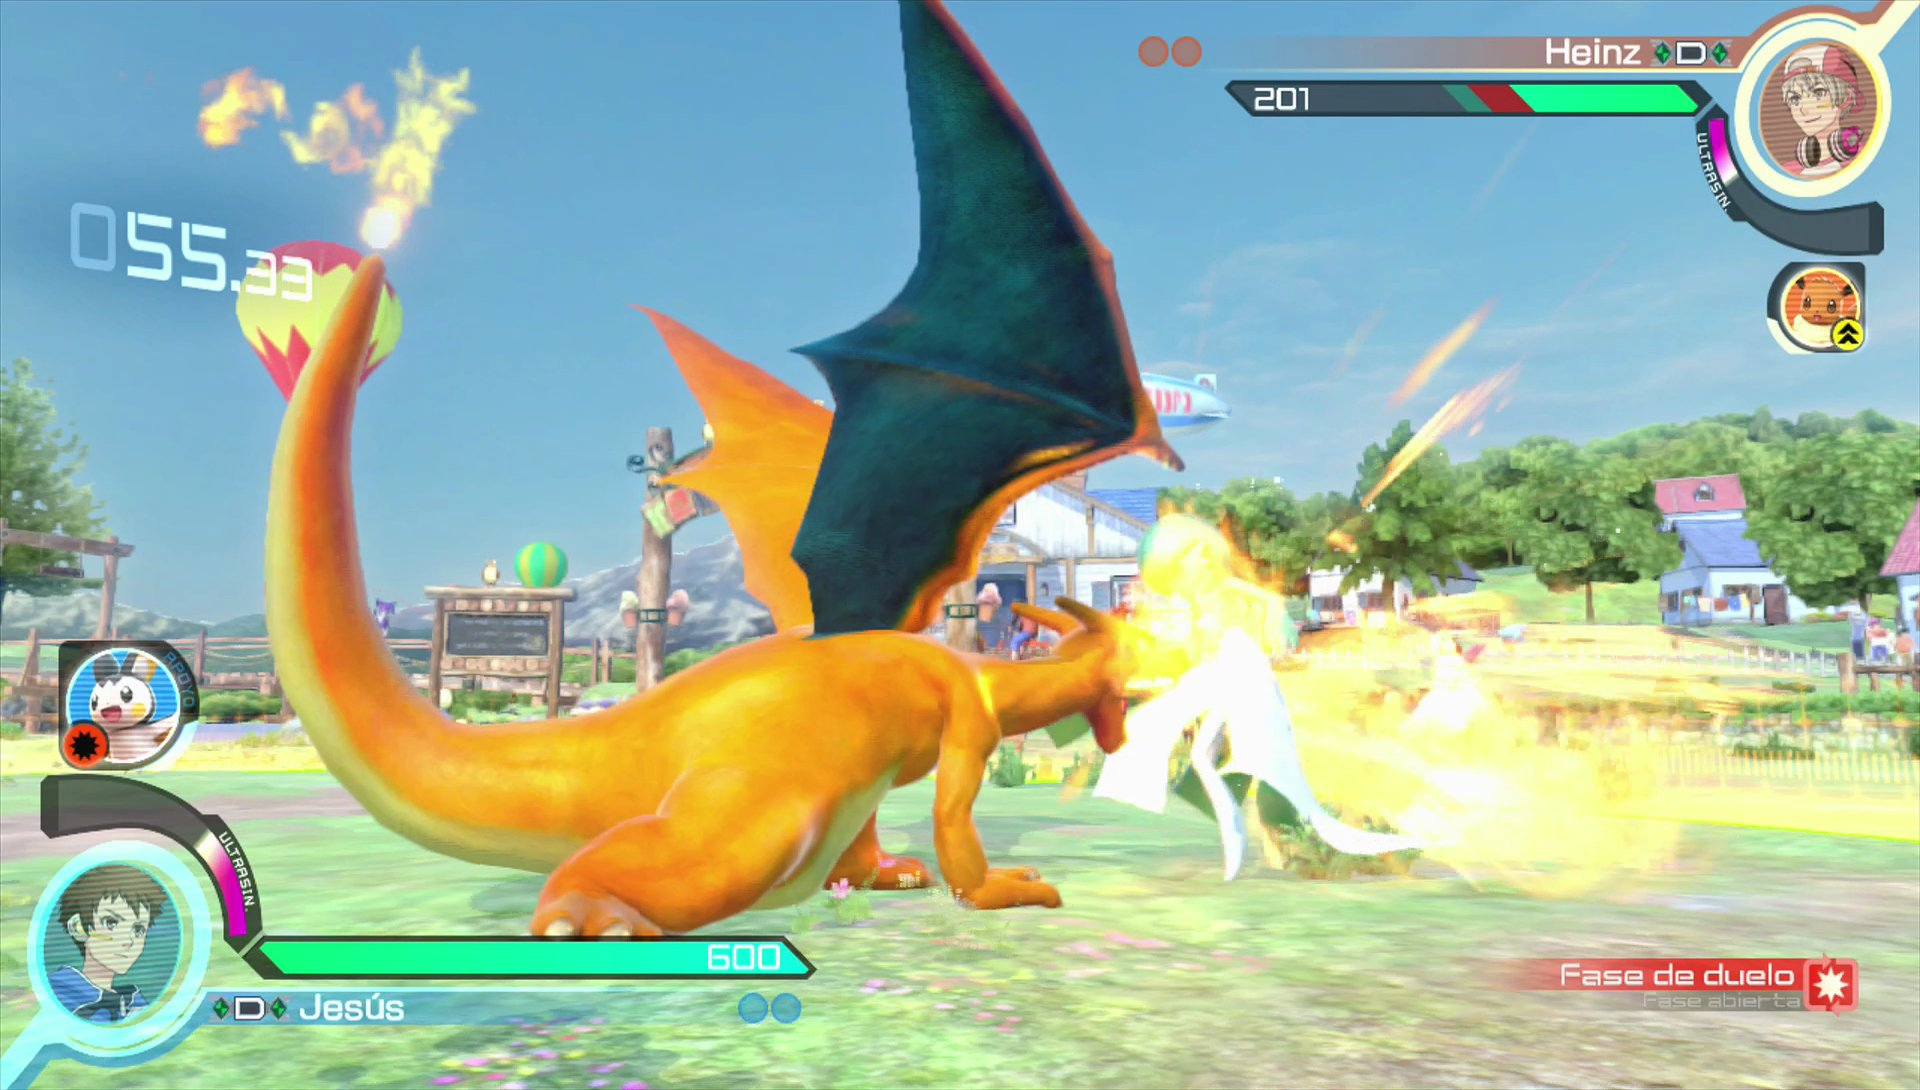 Analisis De Pokken Tournament Para Wii U 3djuegos